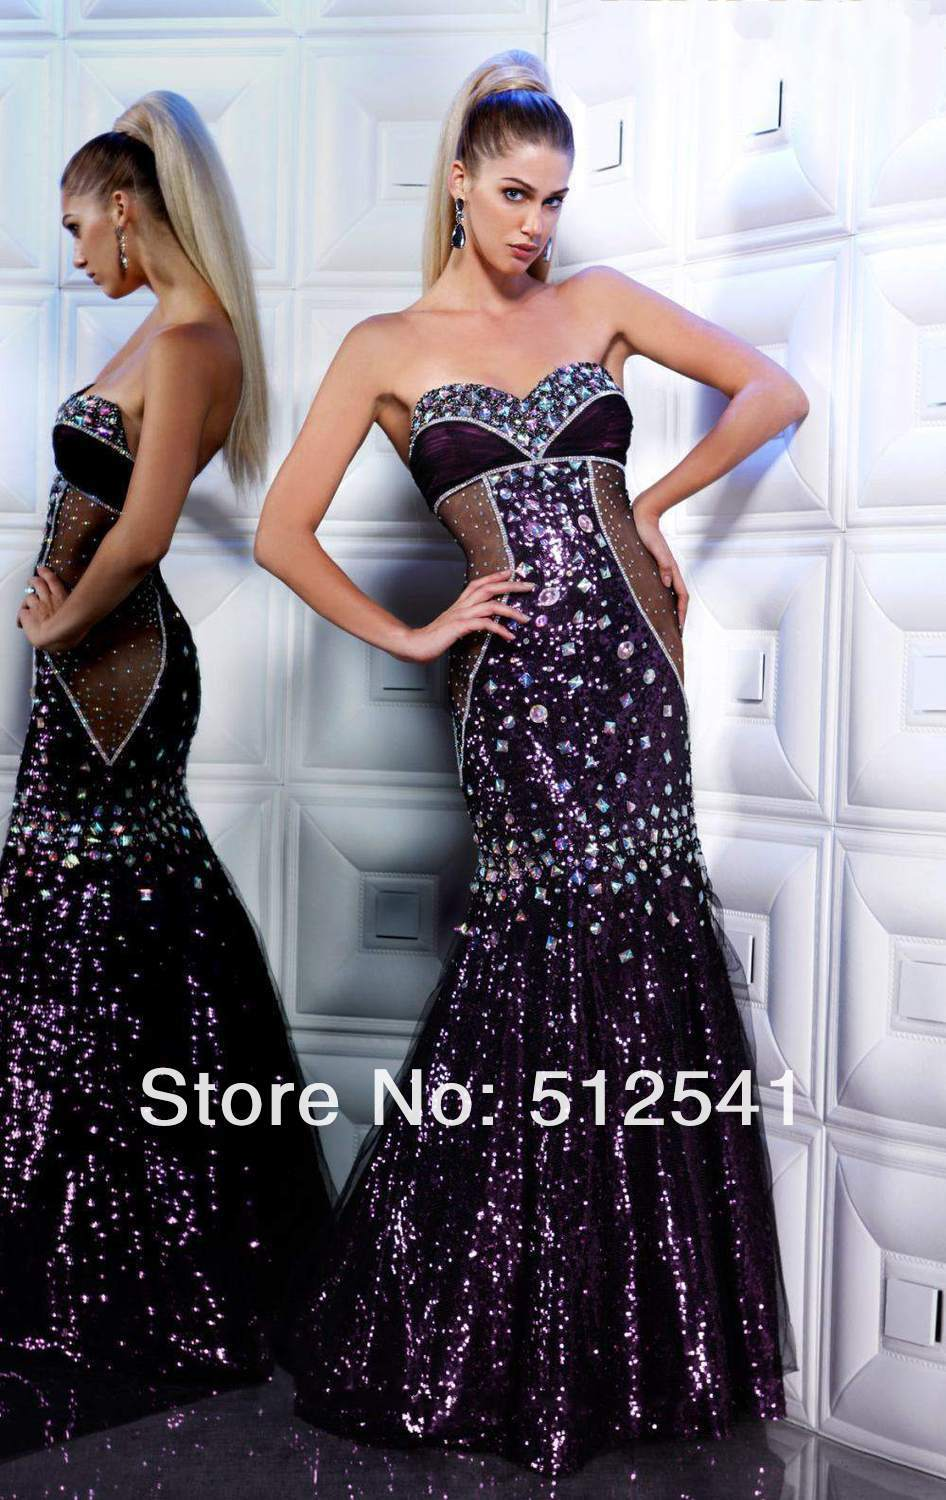 Purple Hottest Party Dress Prom Dresses 2019 Vestidos De Gala Long Sexy Sheath Sweetheart Open Back Sequin Rhinestone Beads With Traditional Methods Weddings & Events